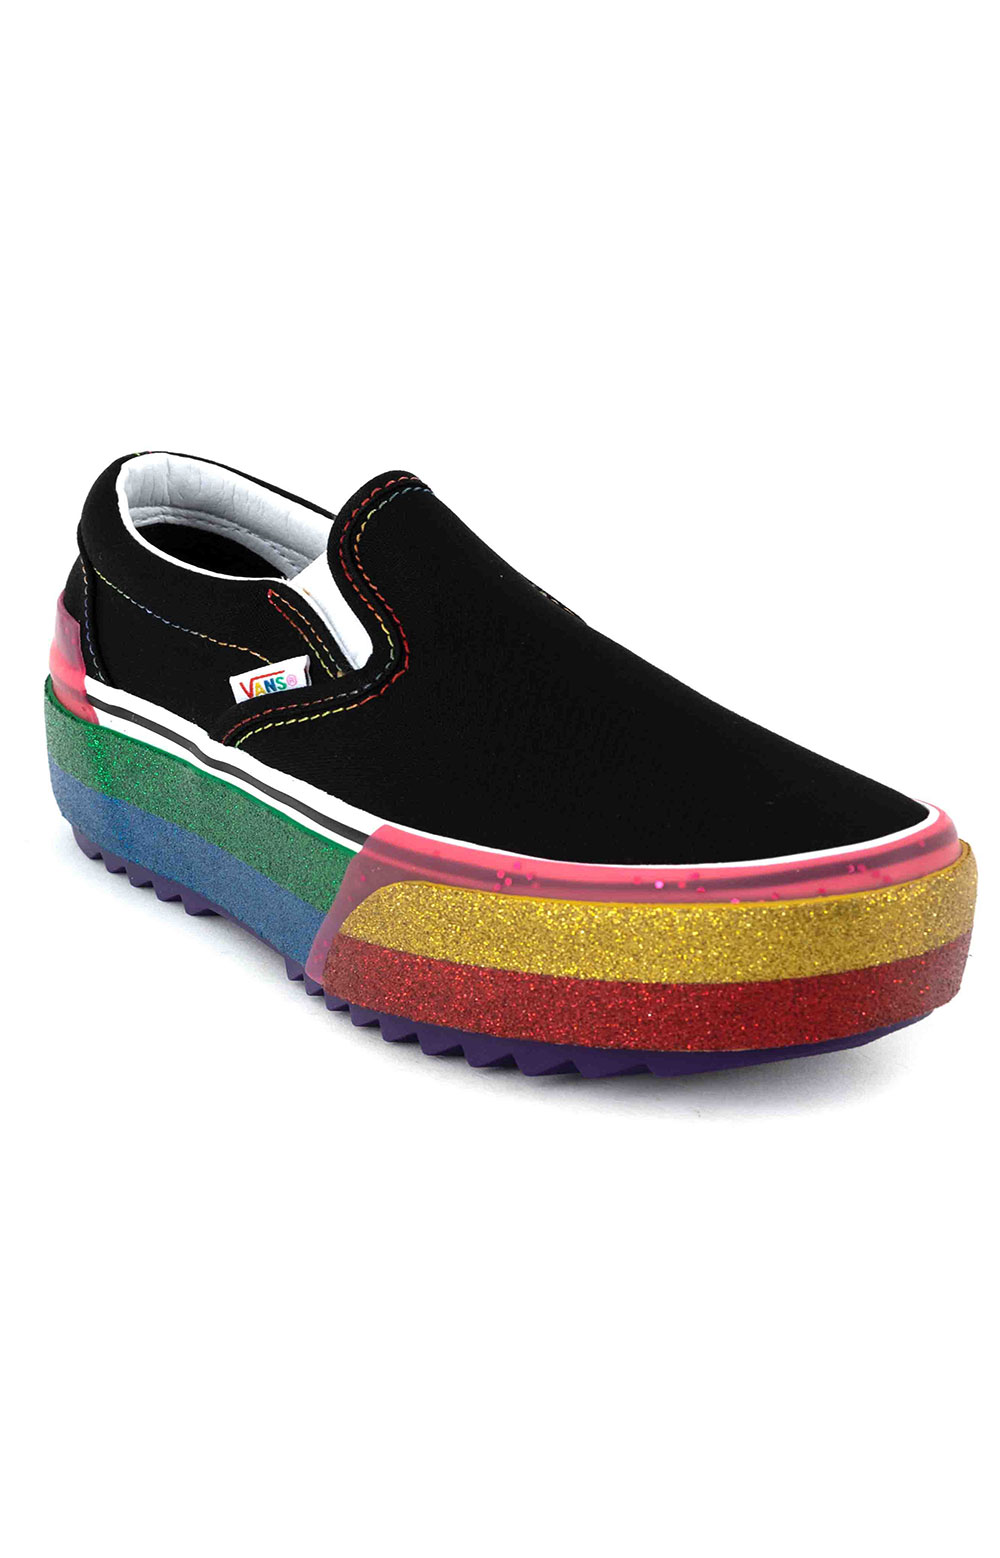 (TZVWW1) Glitter Classic Slip-On Stacked Shoes - Black/Rainbow 3